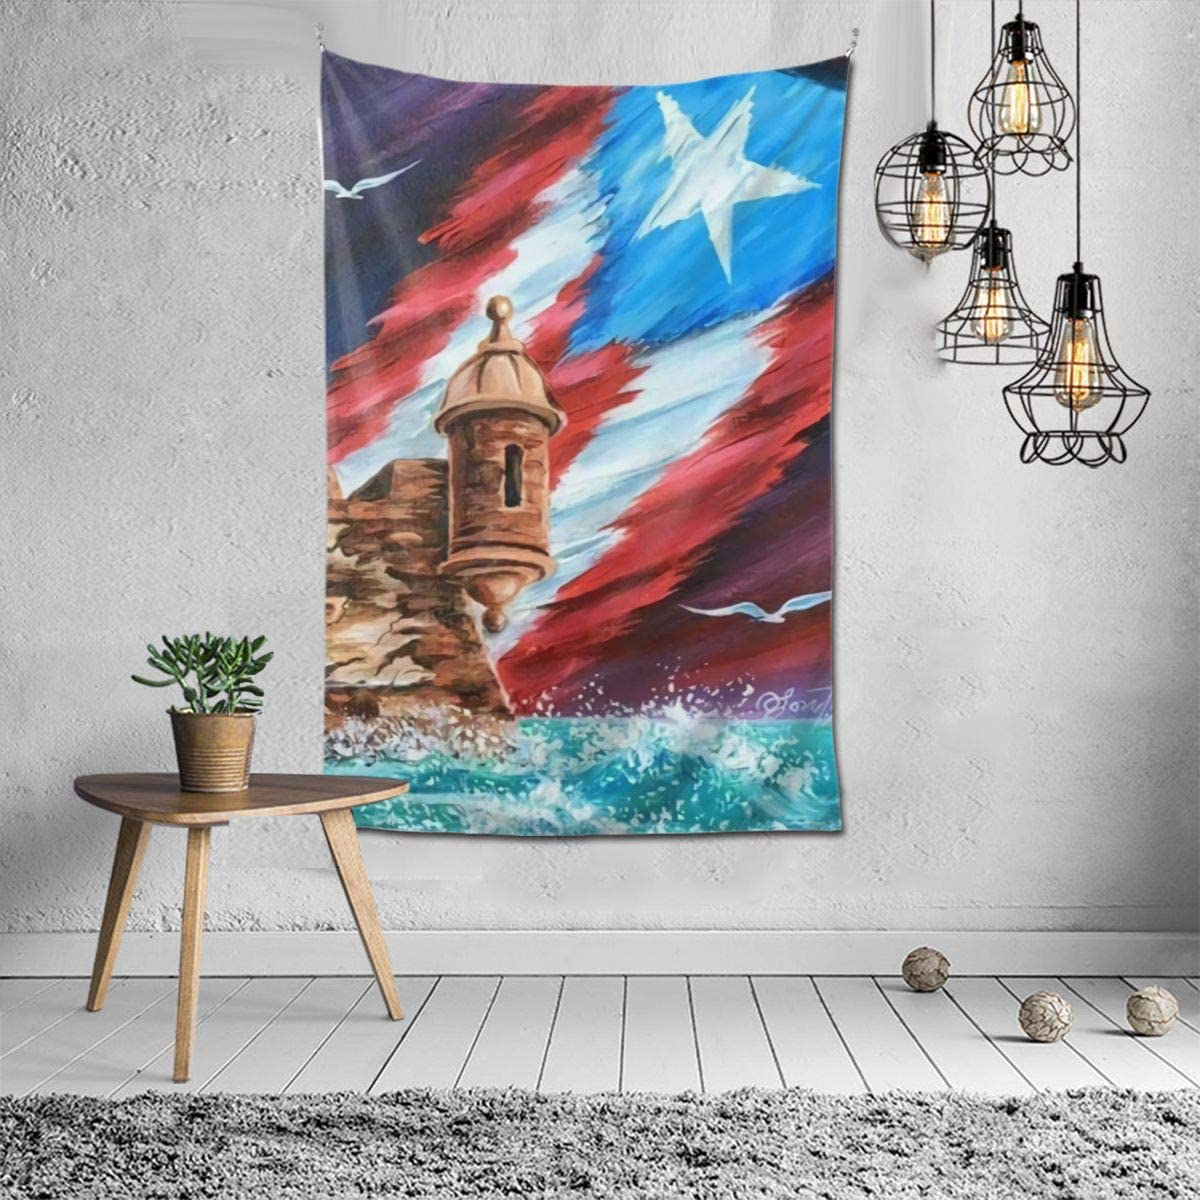 Bohemian Mandala Hippie Hippy Decor Tapestry, Wall Hanging, Home Decor Art - Puerto Rico Flag Wall Tapestry, Living Room, Bedroom, Dorm Room Tapestry, Meditation